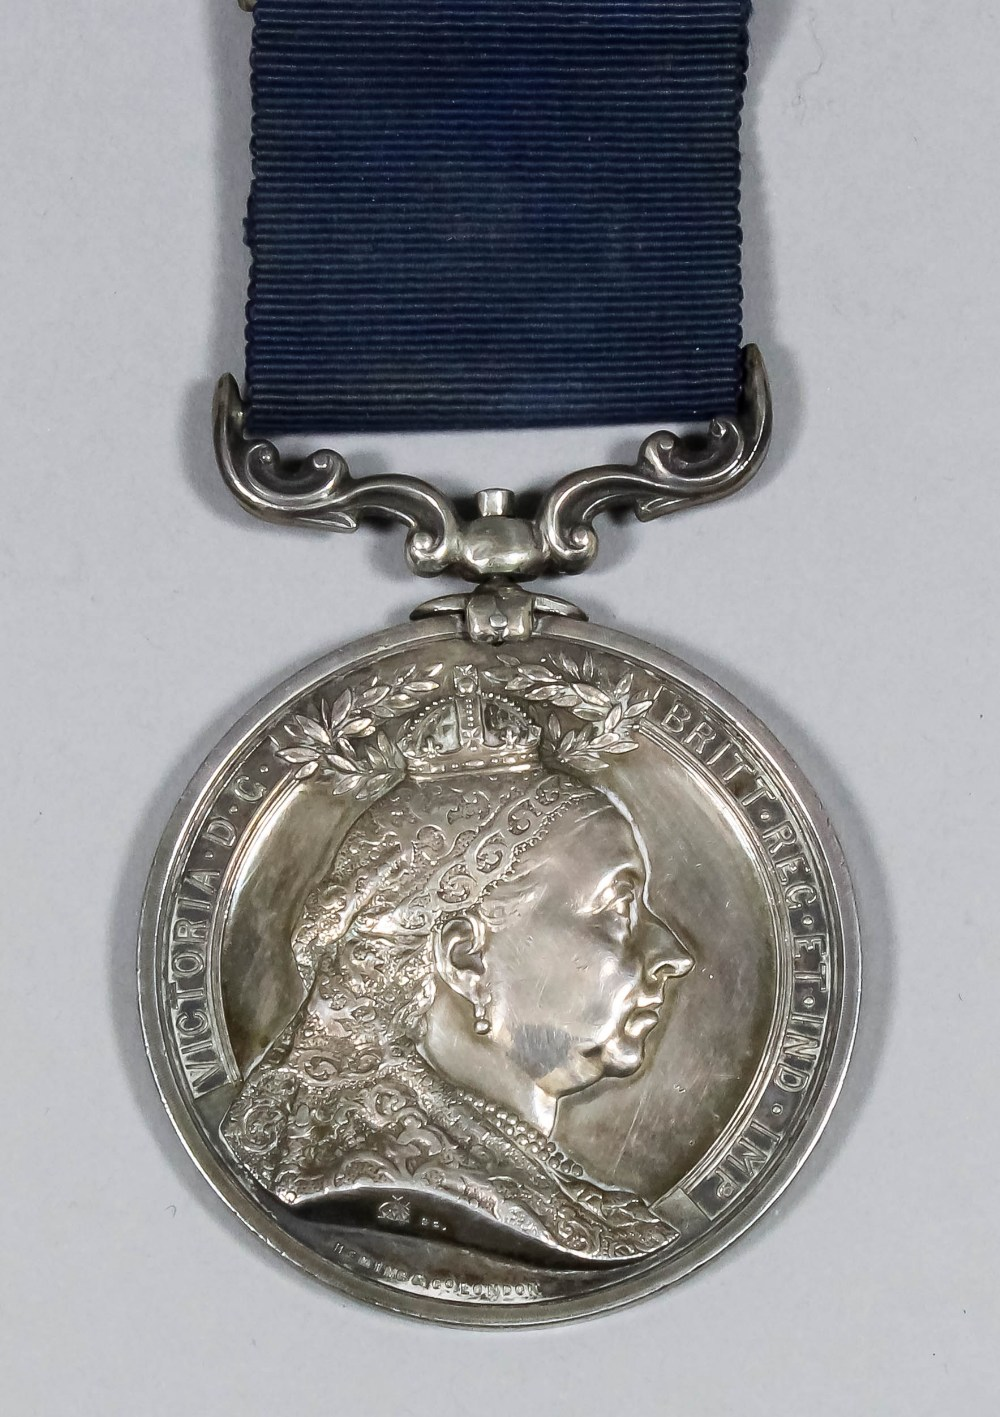 A Victoria silver medallion - the Folkestone, Hythe and Sandgate medal for the rescue of the crew of